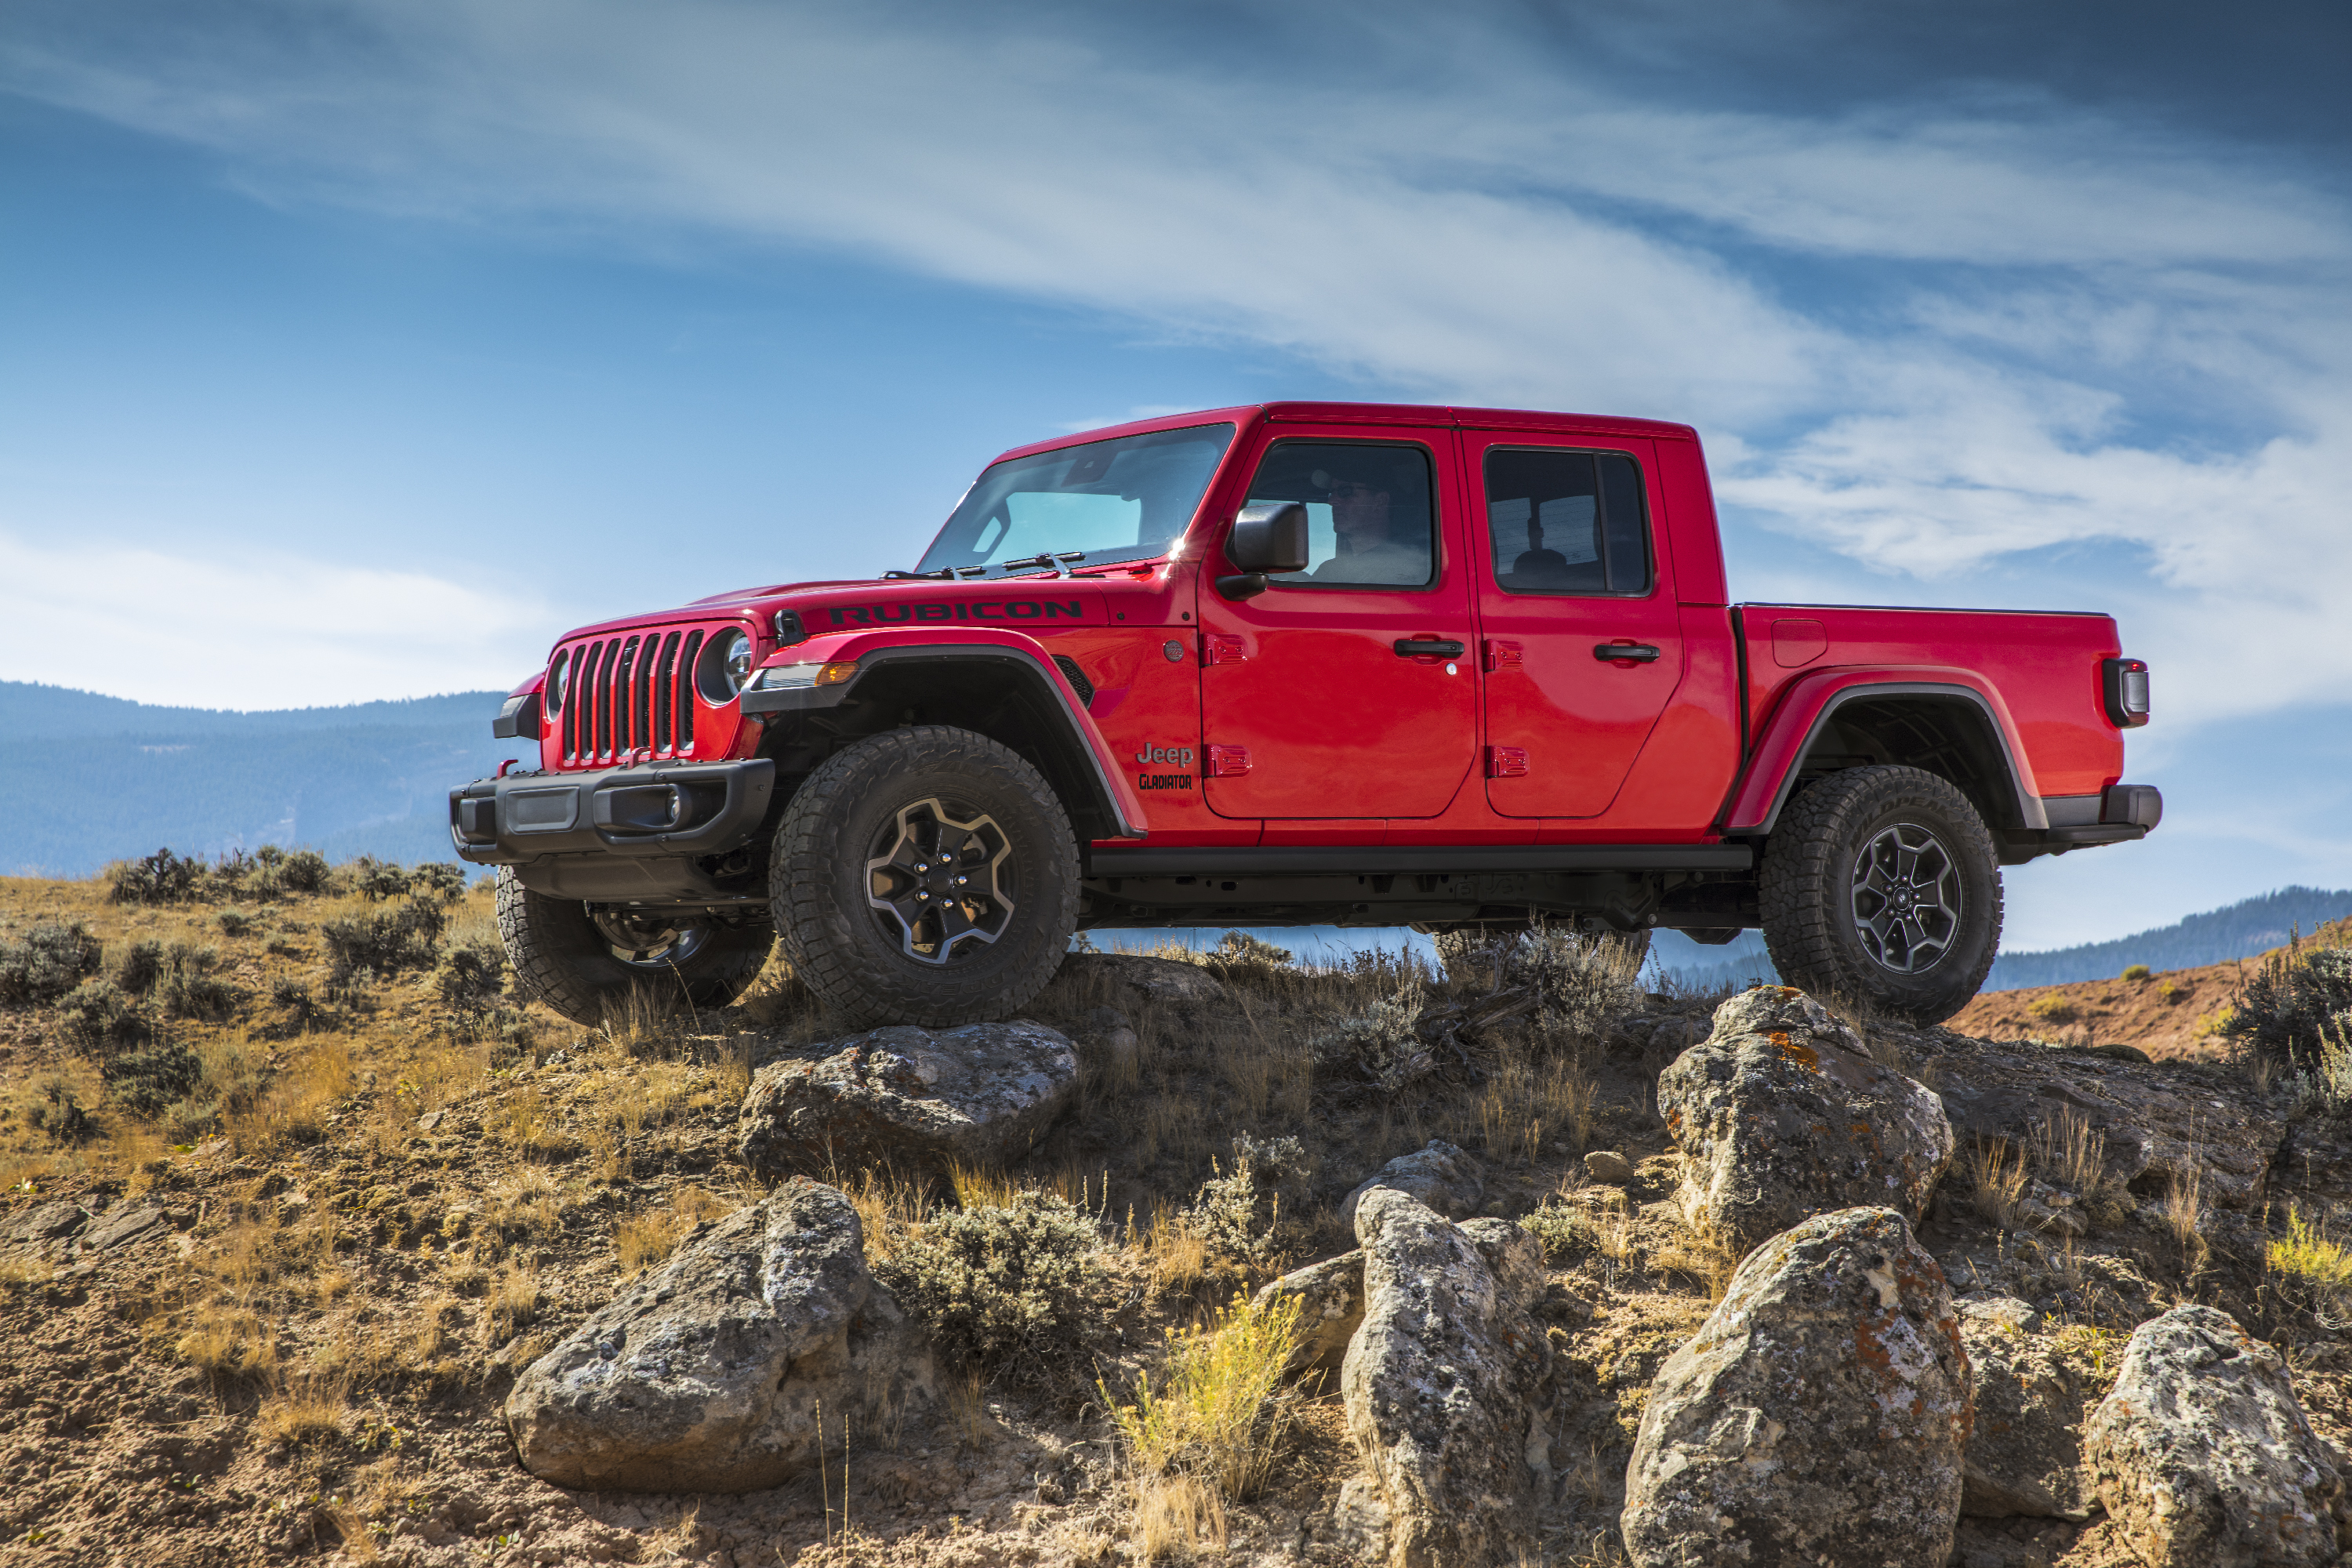 2020 Jeep Gladiator The Solid Axle Open Air Truck Of Your Dreams